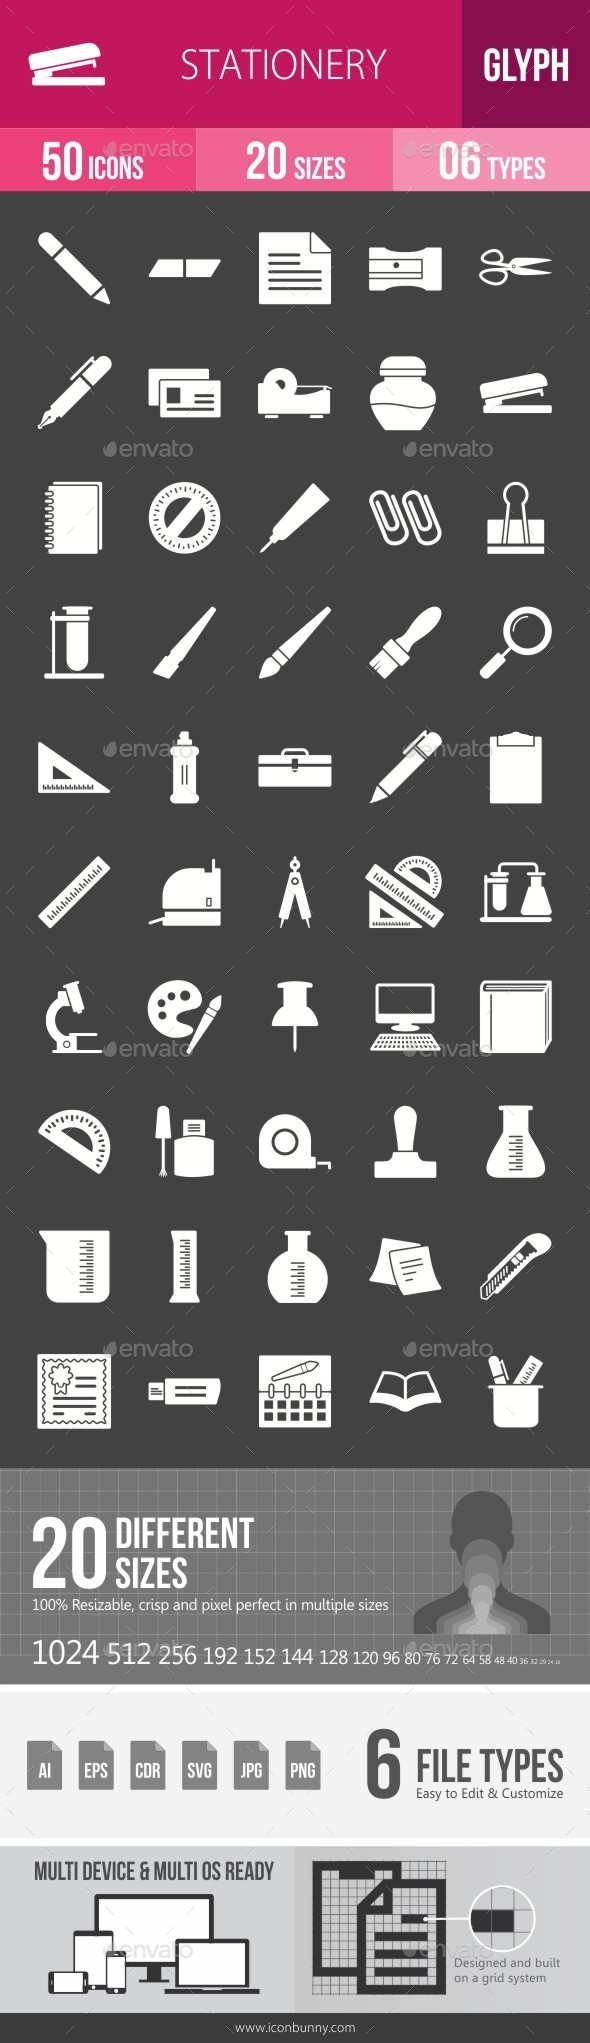 Stationery Glyph Inverted Icons - Icons